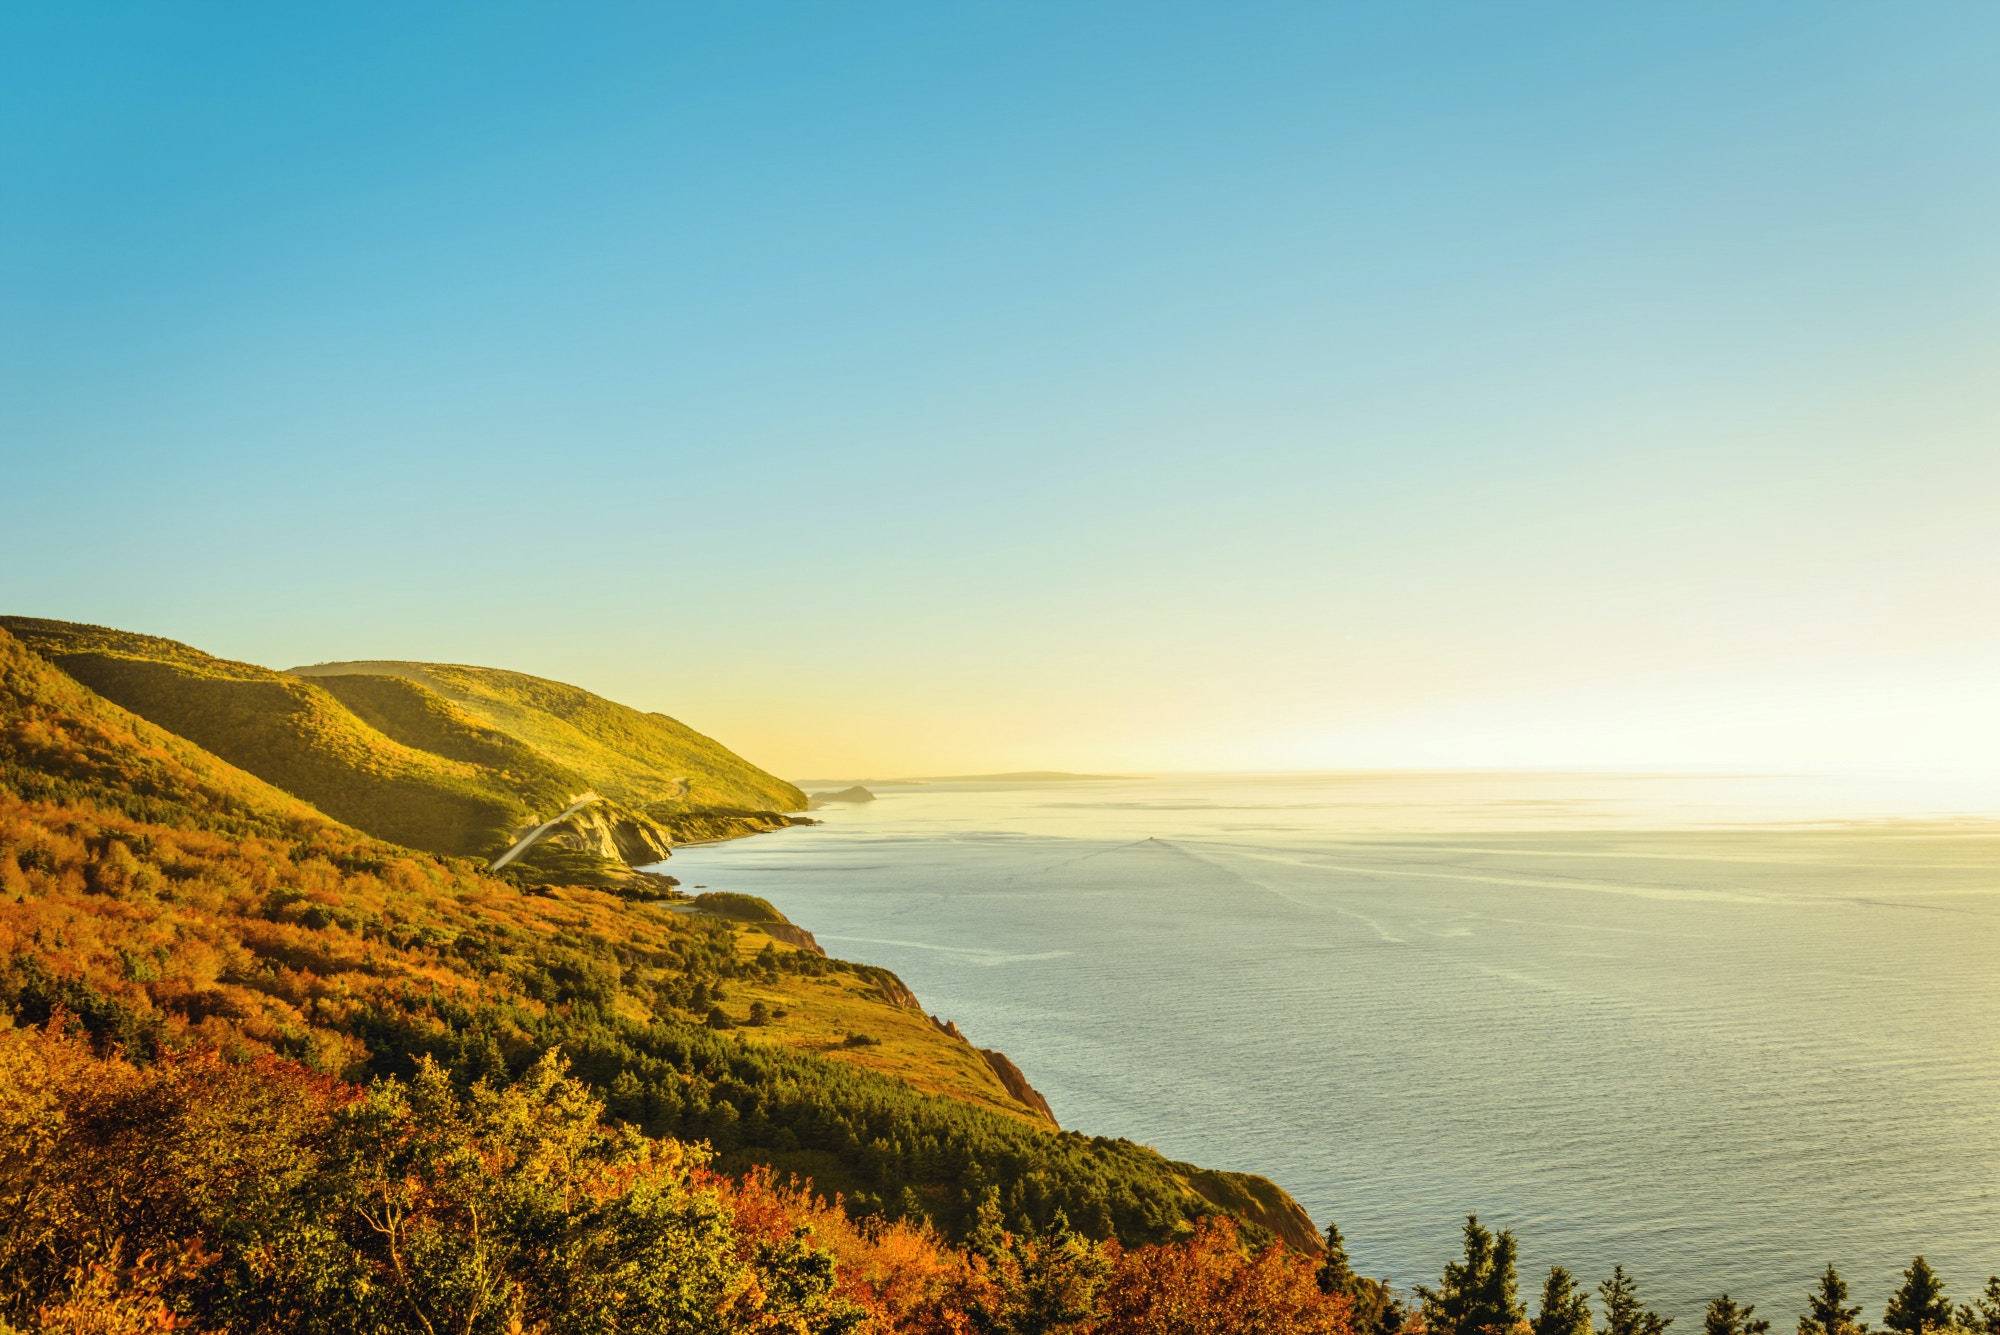 Video of the month: Cabot Trail in the fall (Cape Breton, Canada) © Vadim.Petrov / Shutterstock